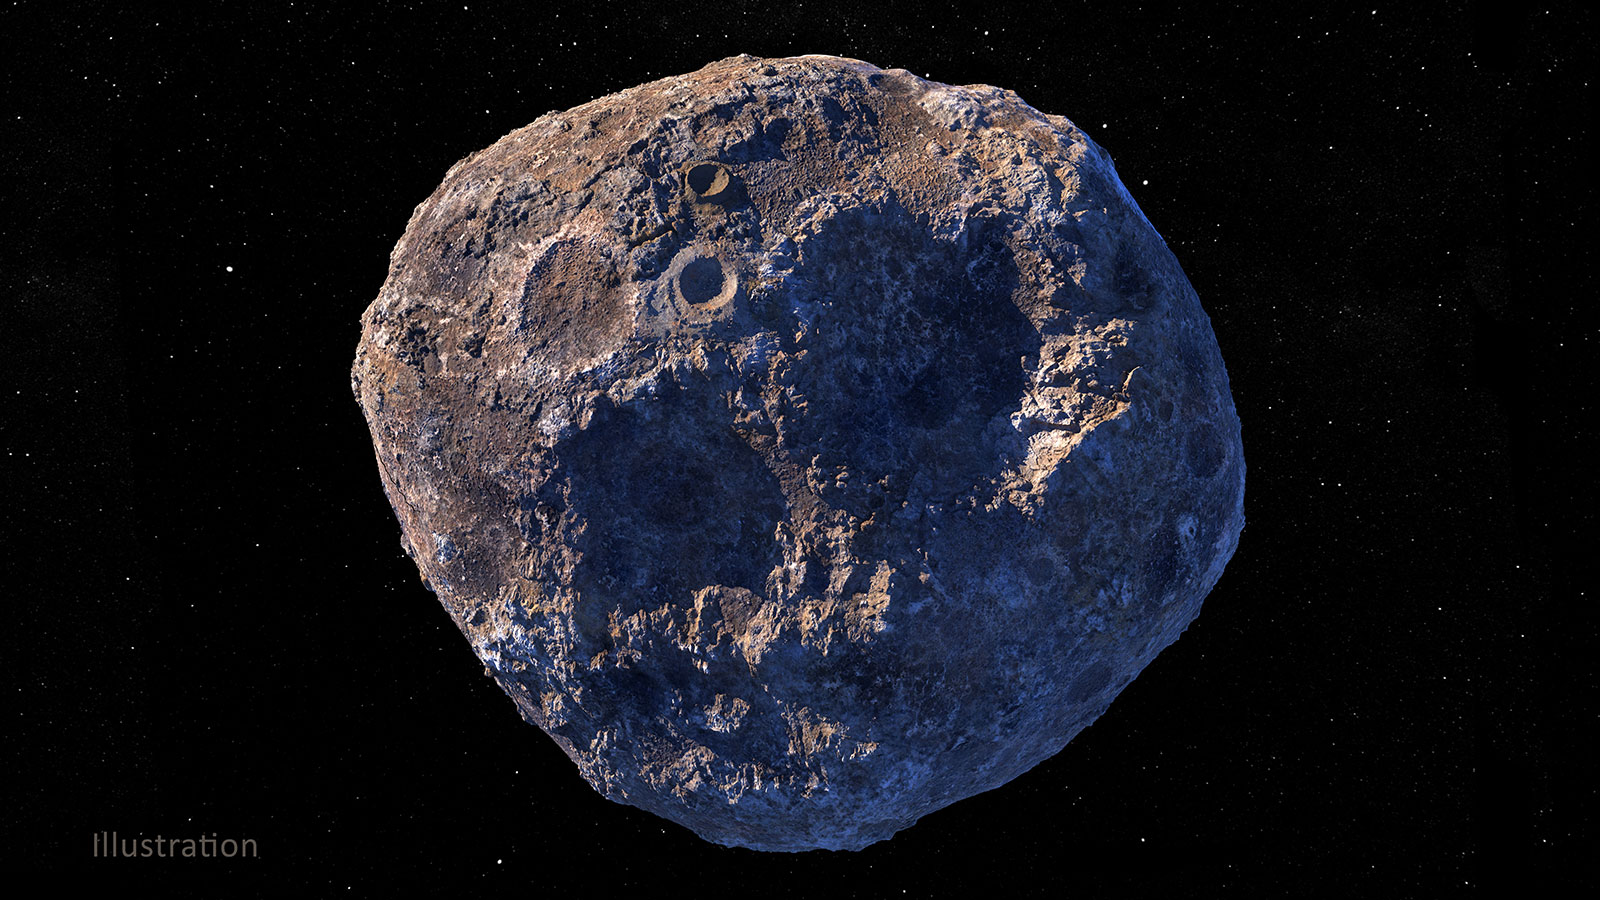 pia24472-psyche-asteroid-illustration-16_0.jpg